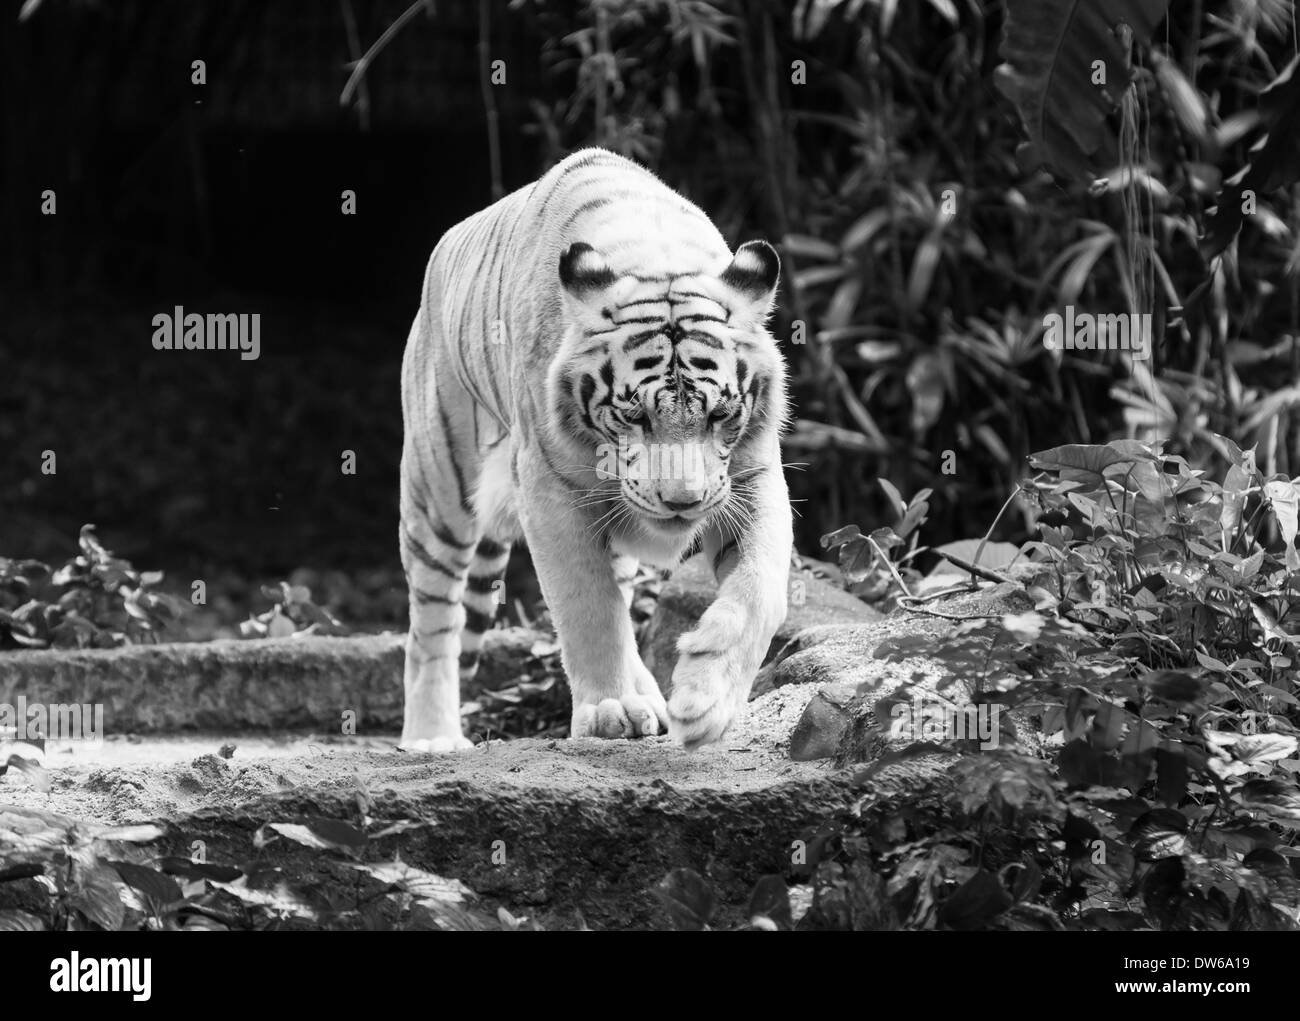 White bengal tiger at the Singapore Zoo. - Stock Image